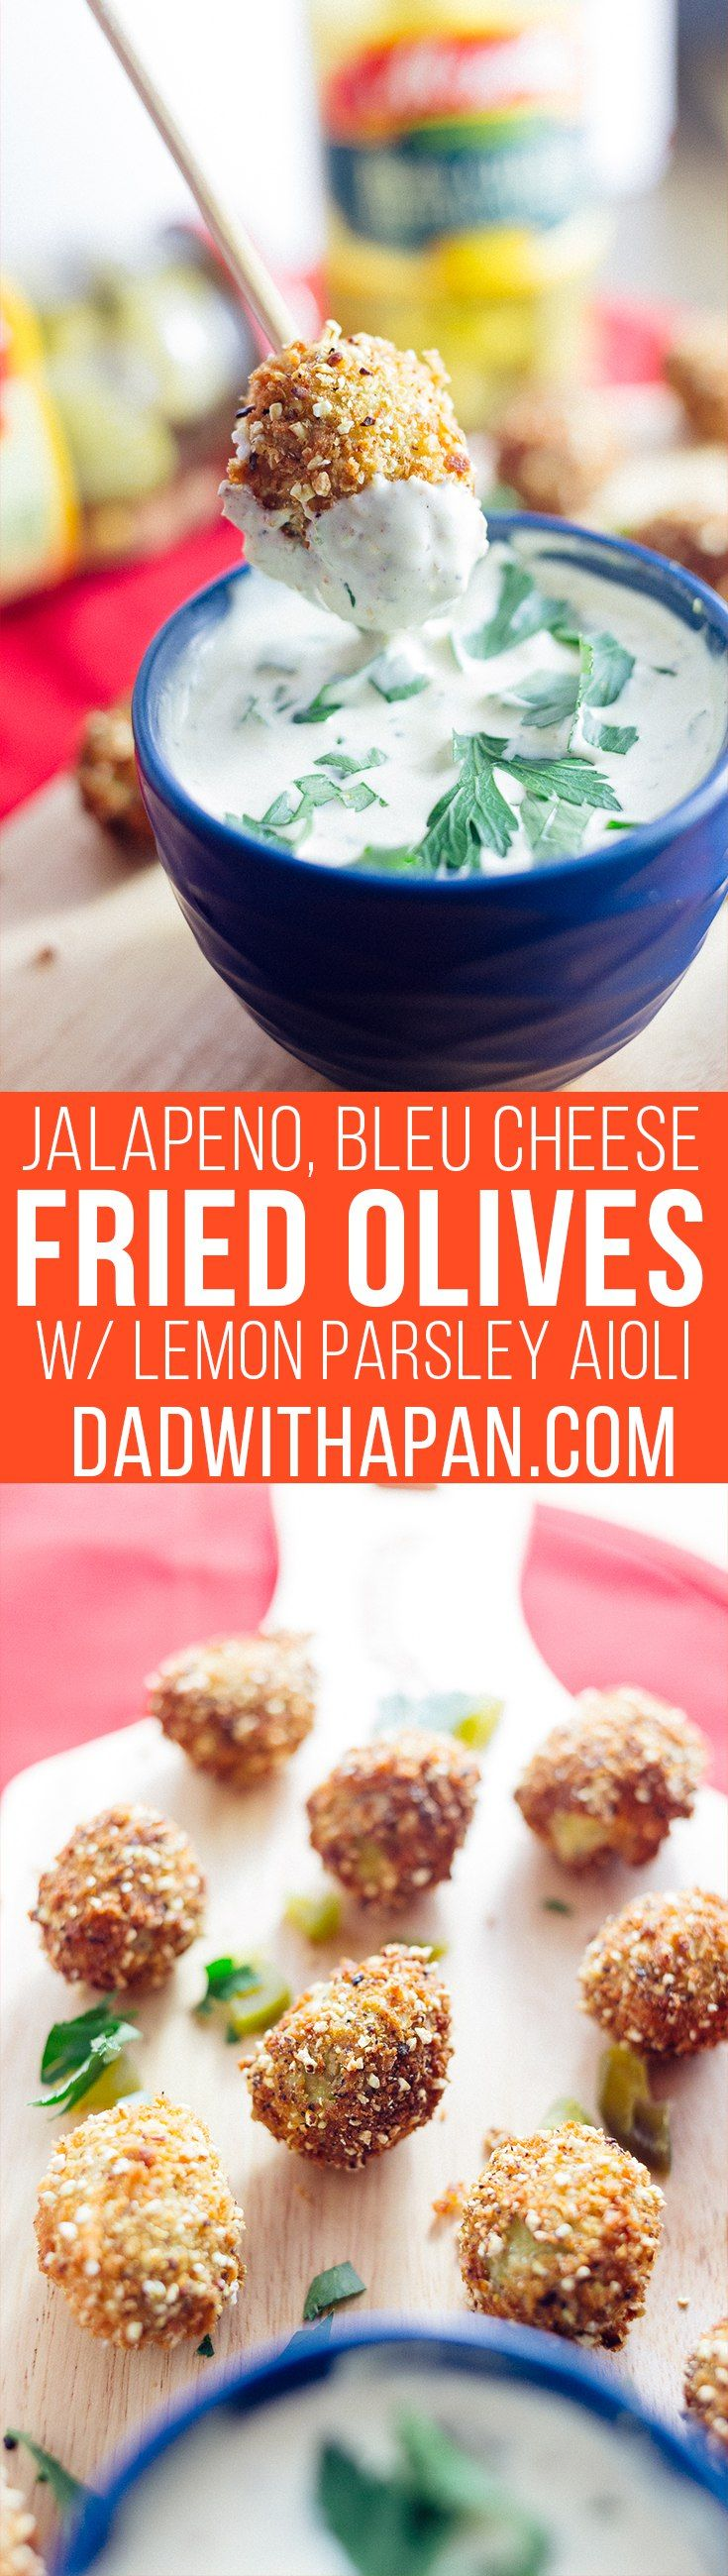 Jalapeno Bleu Cheese Fried Olives with Lemon Parsley Aioli - Dad With A Pan